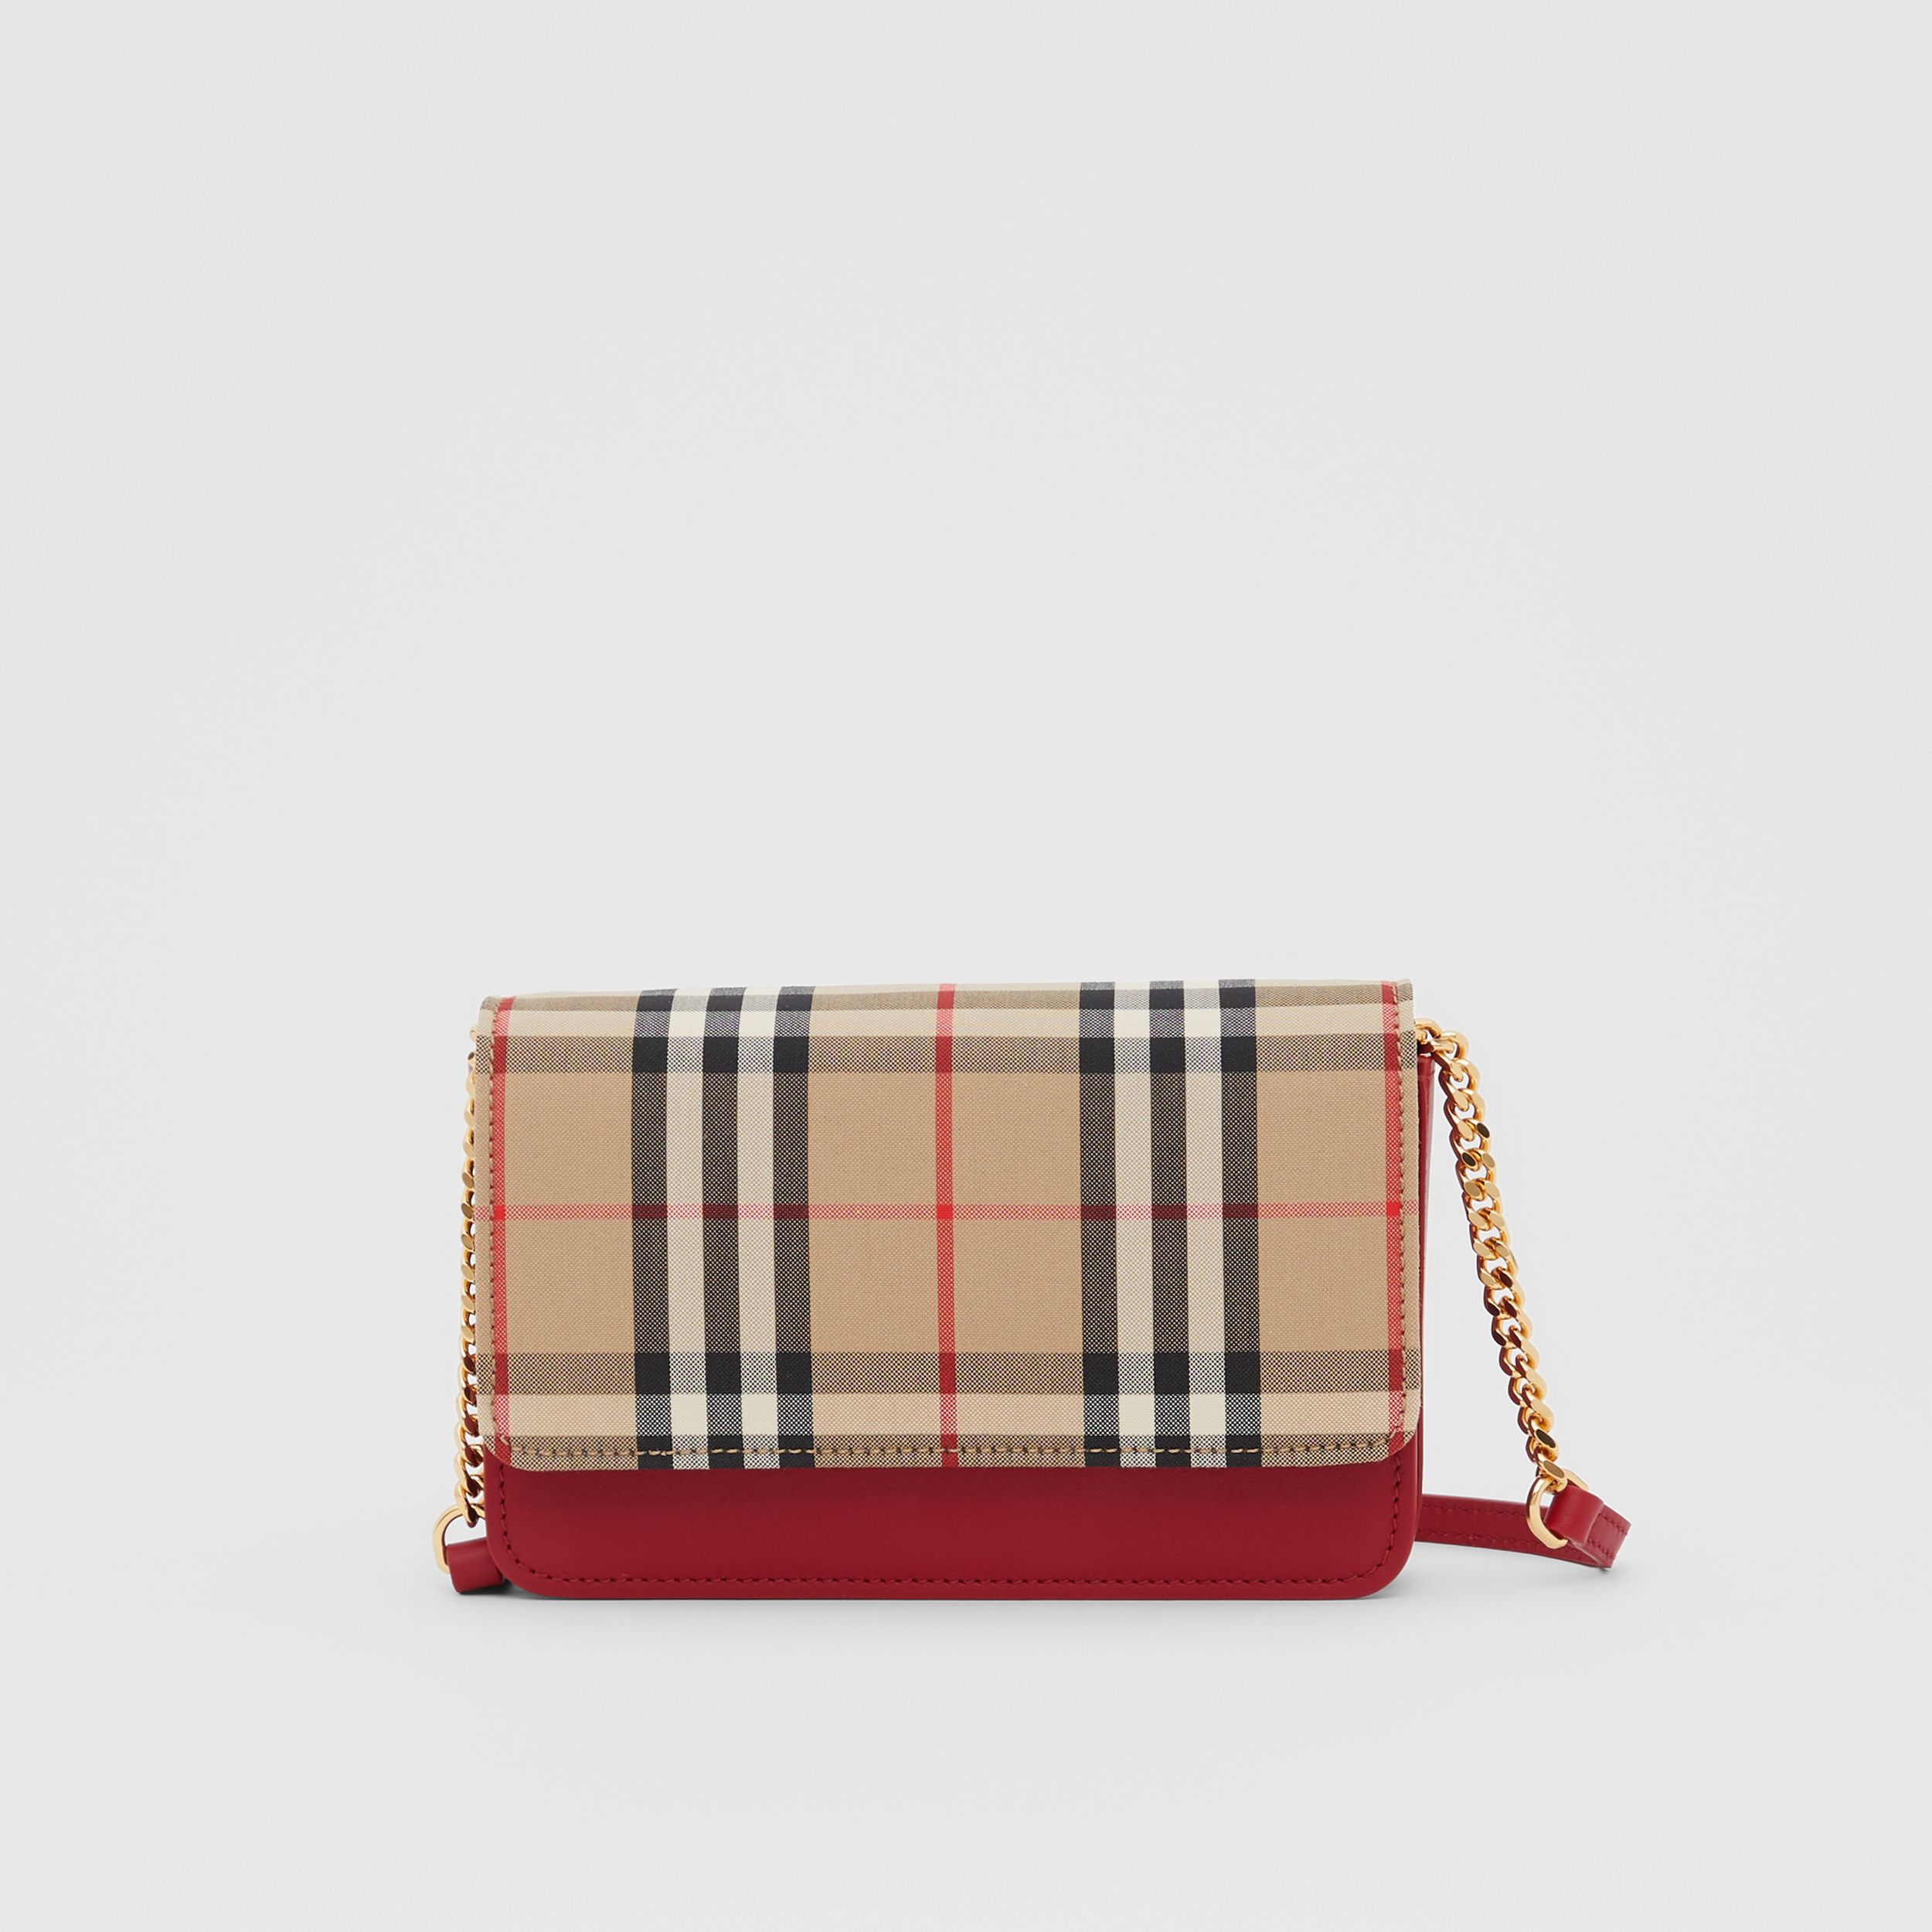 Vintage Check Canvas and Leather Bag in Parade Red - Women | Burberry - 1